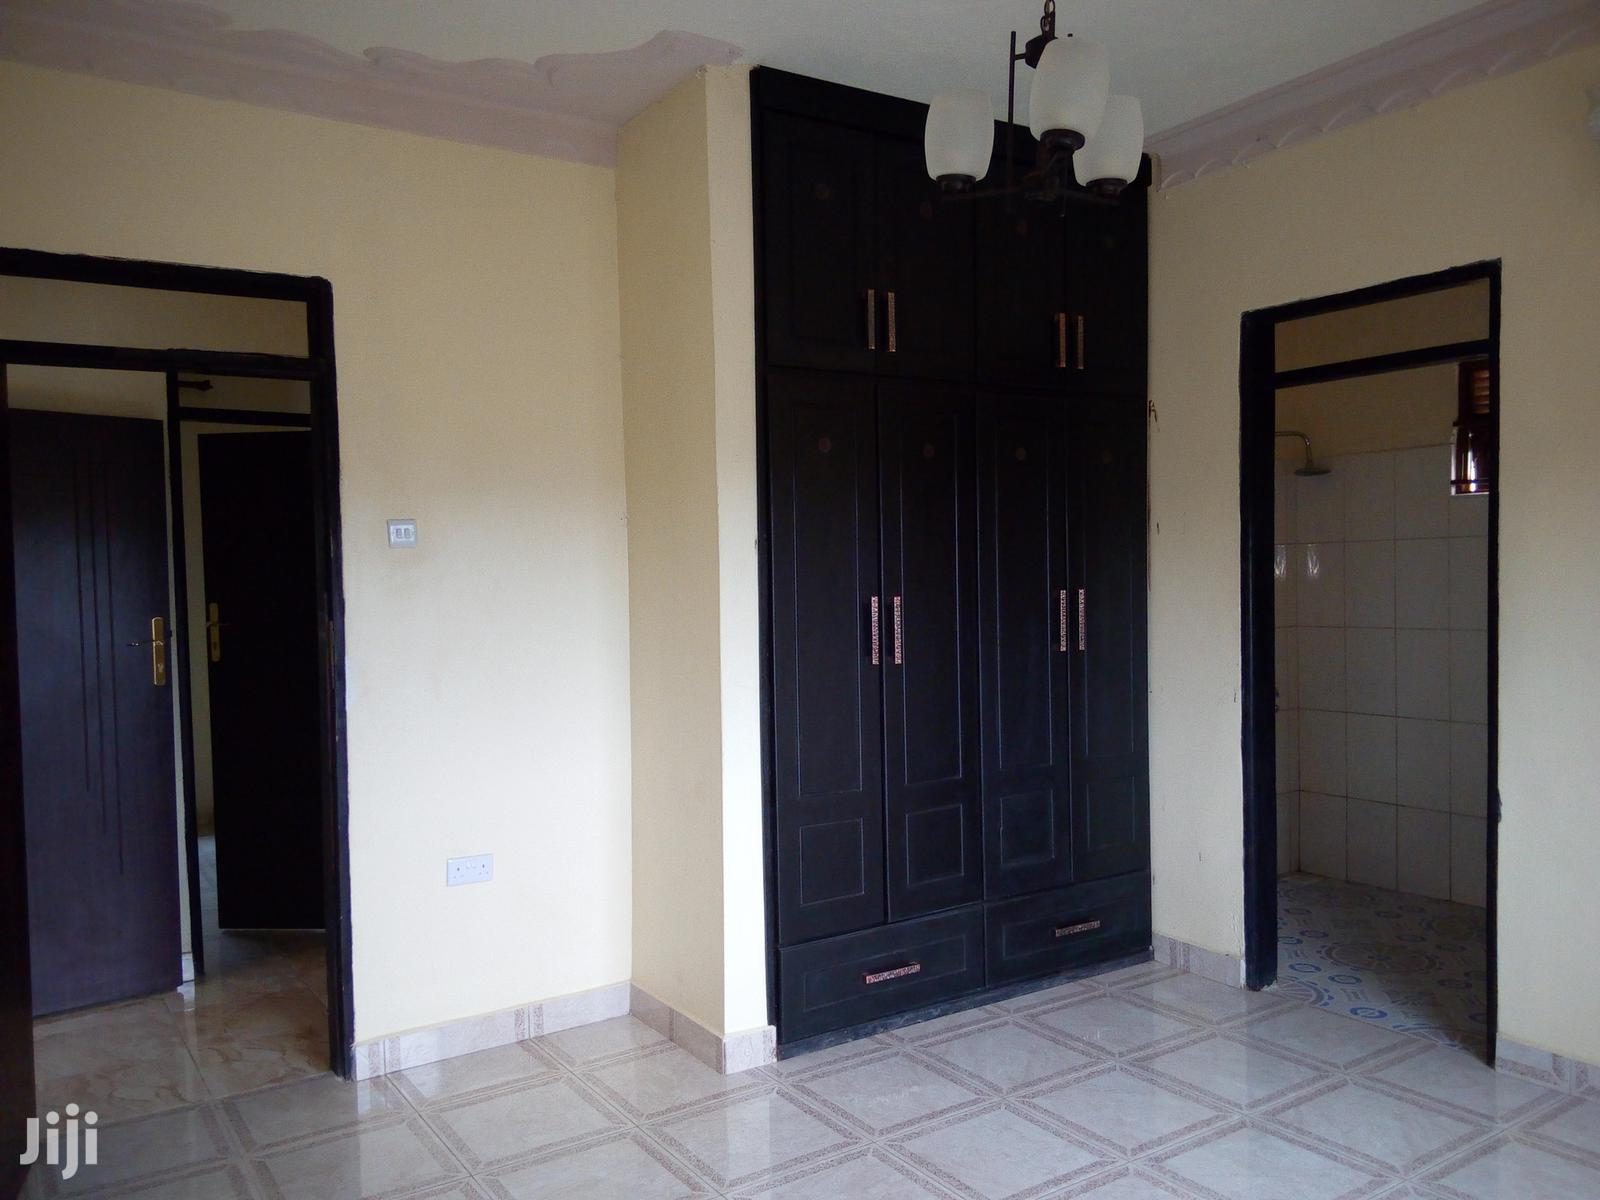 Two Bedroom Two Toilet House In Namugongo For Rent | Houses & Apartments For Rent for sale in Kampala, Central Region, Uganda